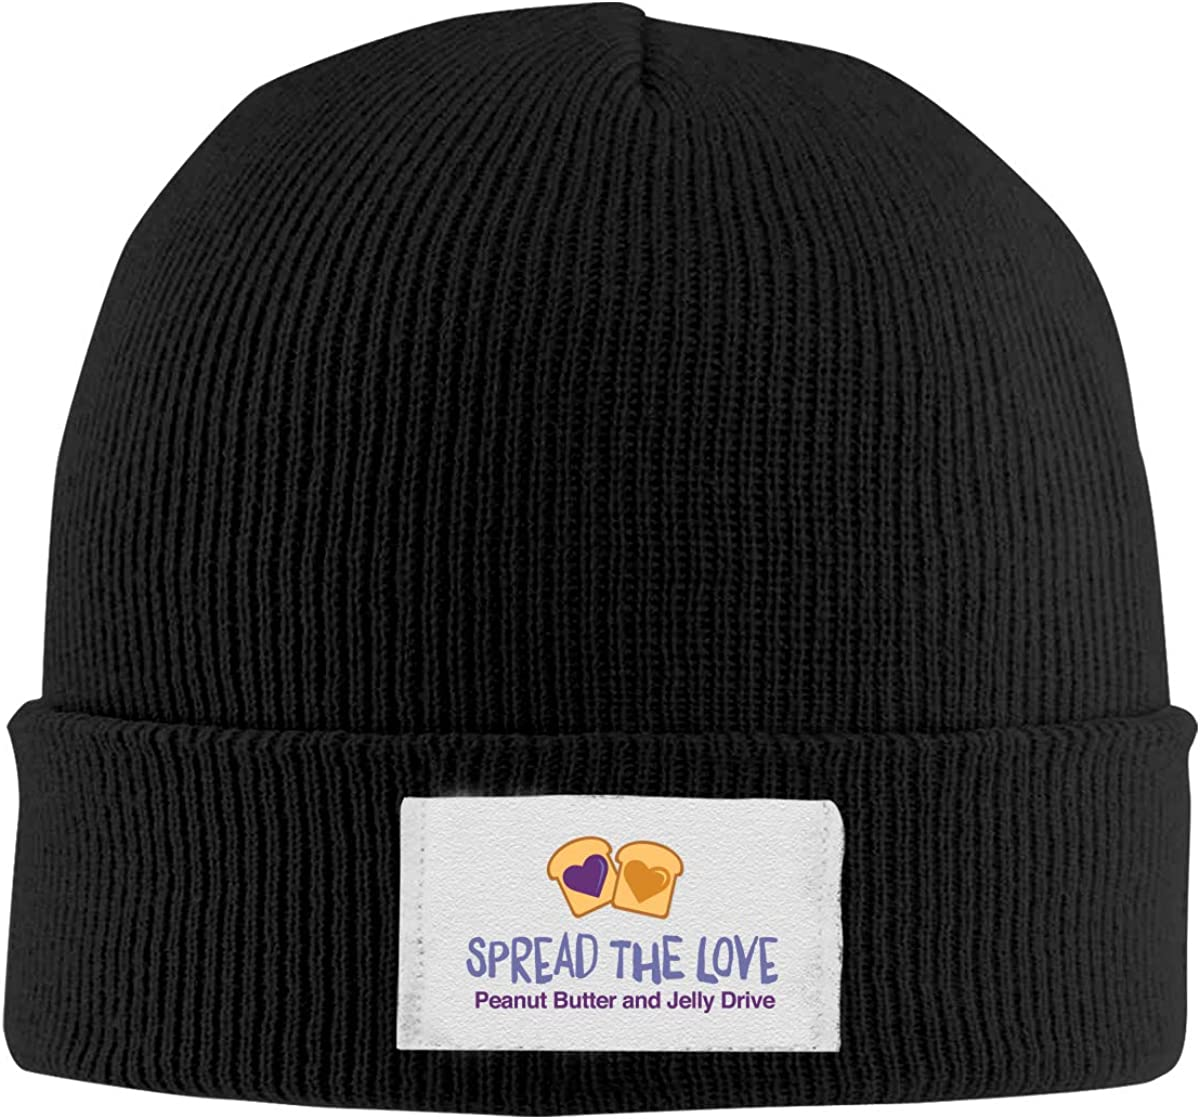 Stretchy Cuff Beanie Hat Black Skull Caps Peanut Butter and Jelly Winter Warm Knit Hats